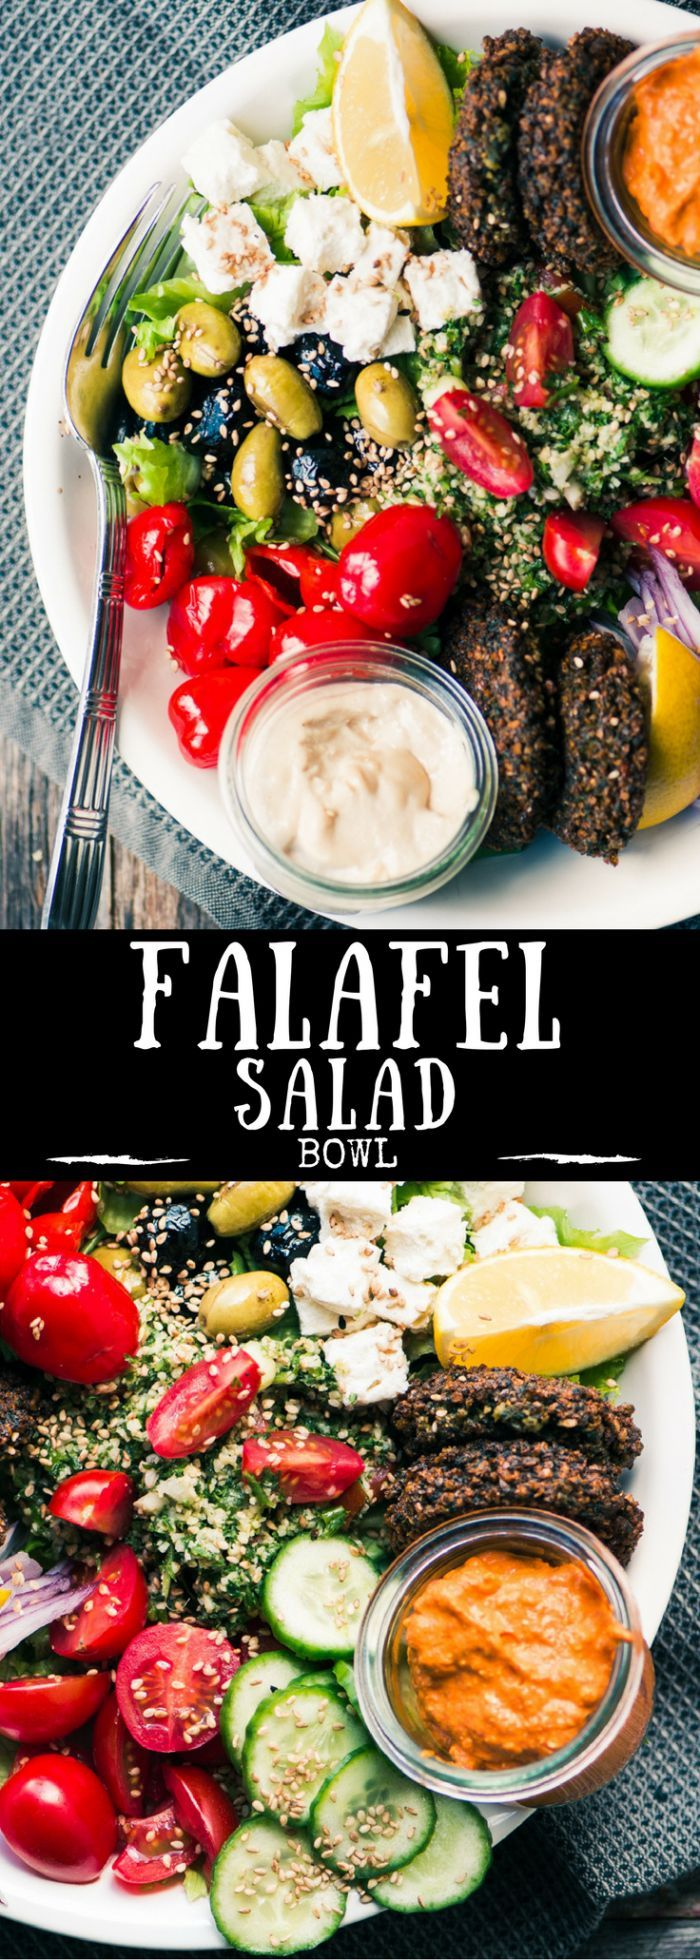 This healthy and protein rich Falafel Salad Bowl is a wonderful meatless main course salad. | Middle Eastern | vegetarian | lunch | Meatless Monday | Vegan